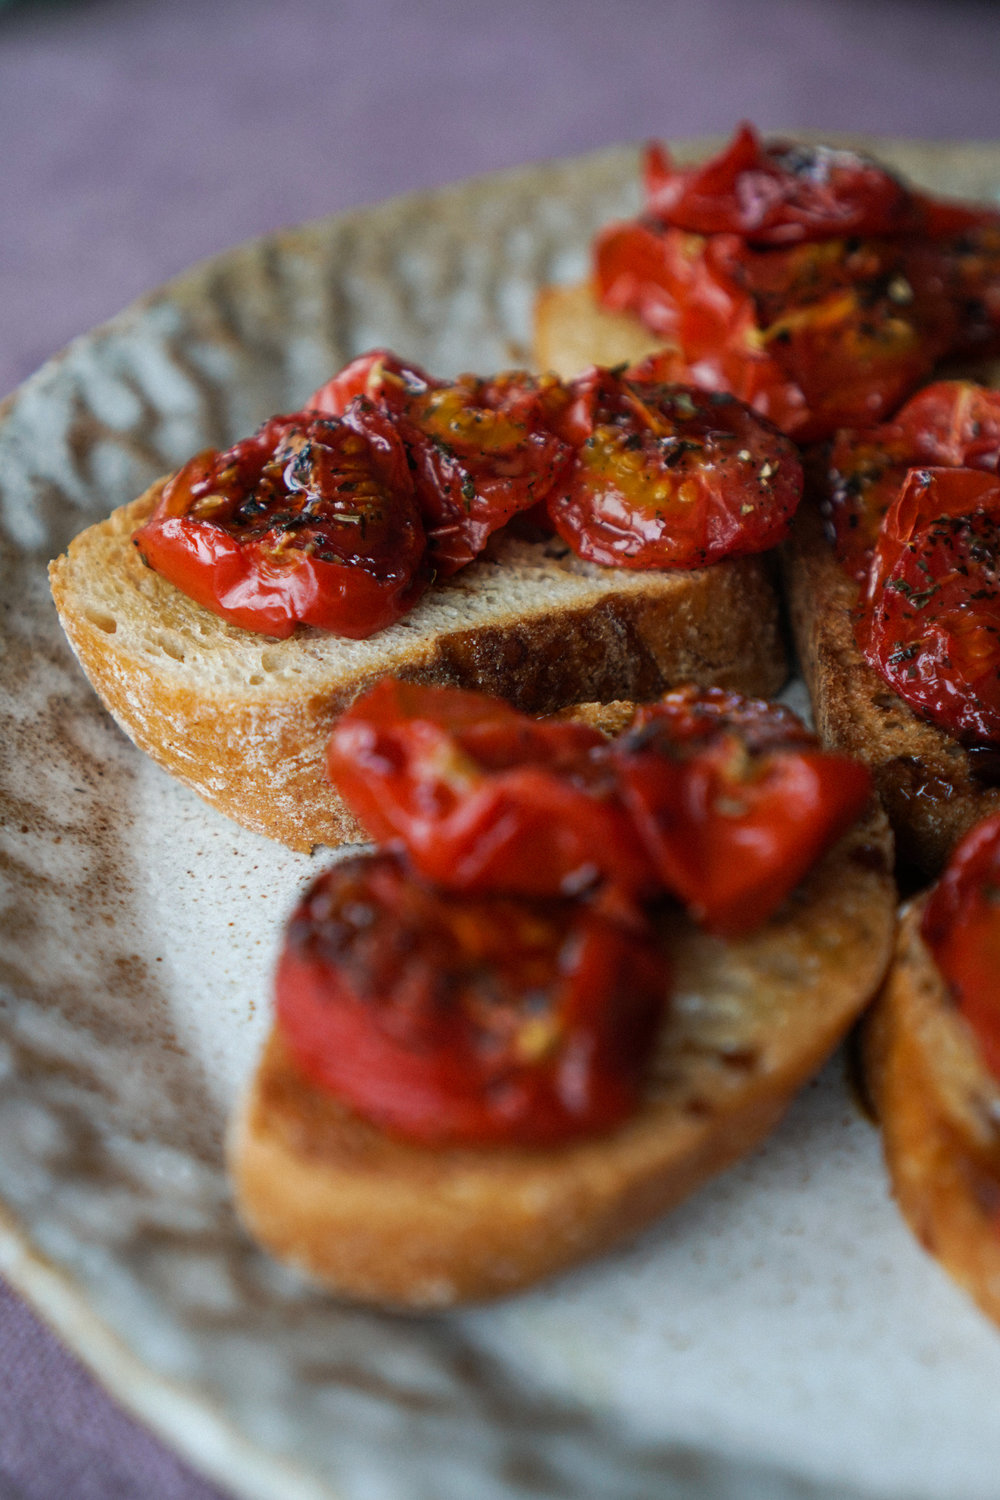 roasted_cherry_tomato_bruschettas_with_balsamic_glaze-8.jpg